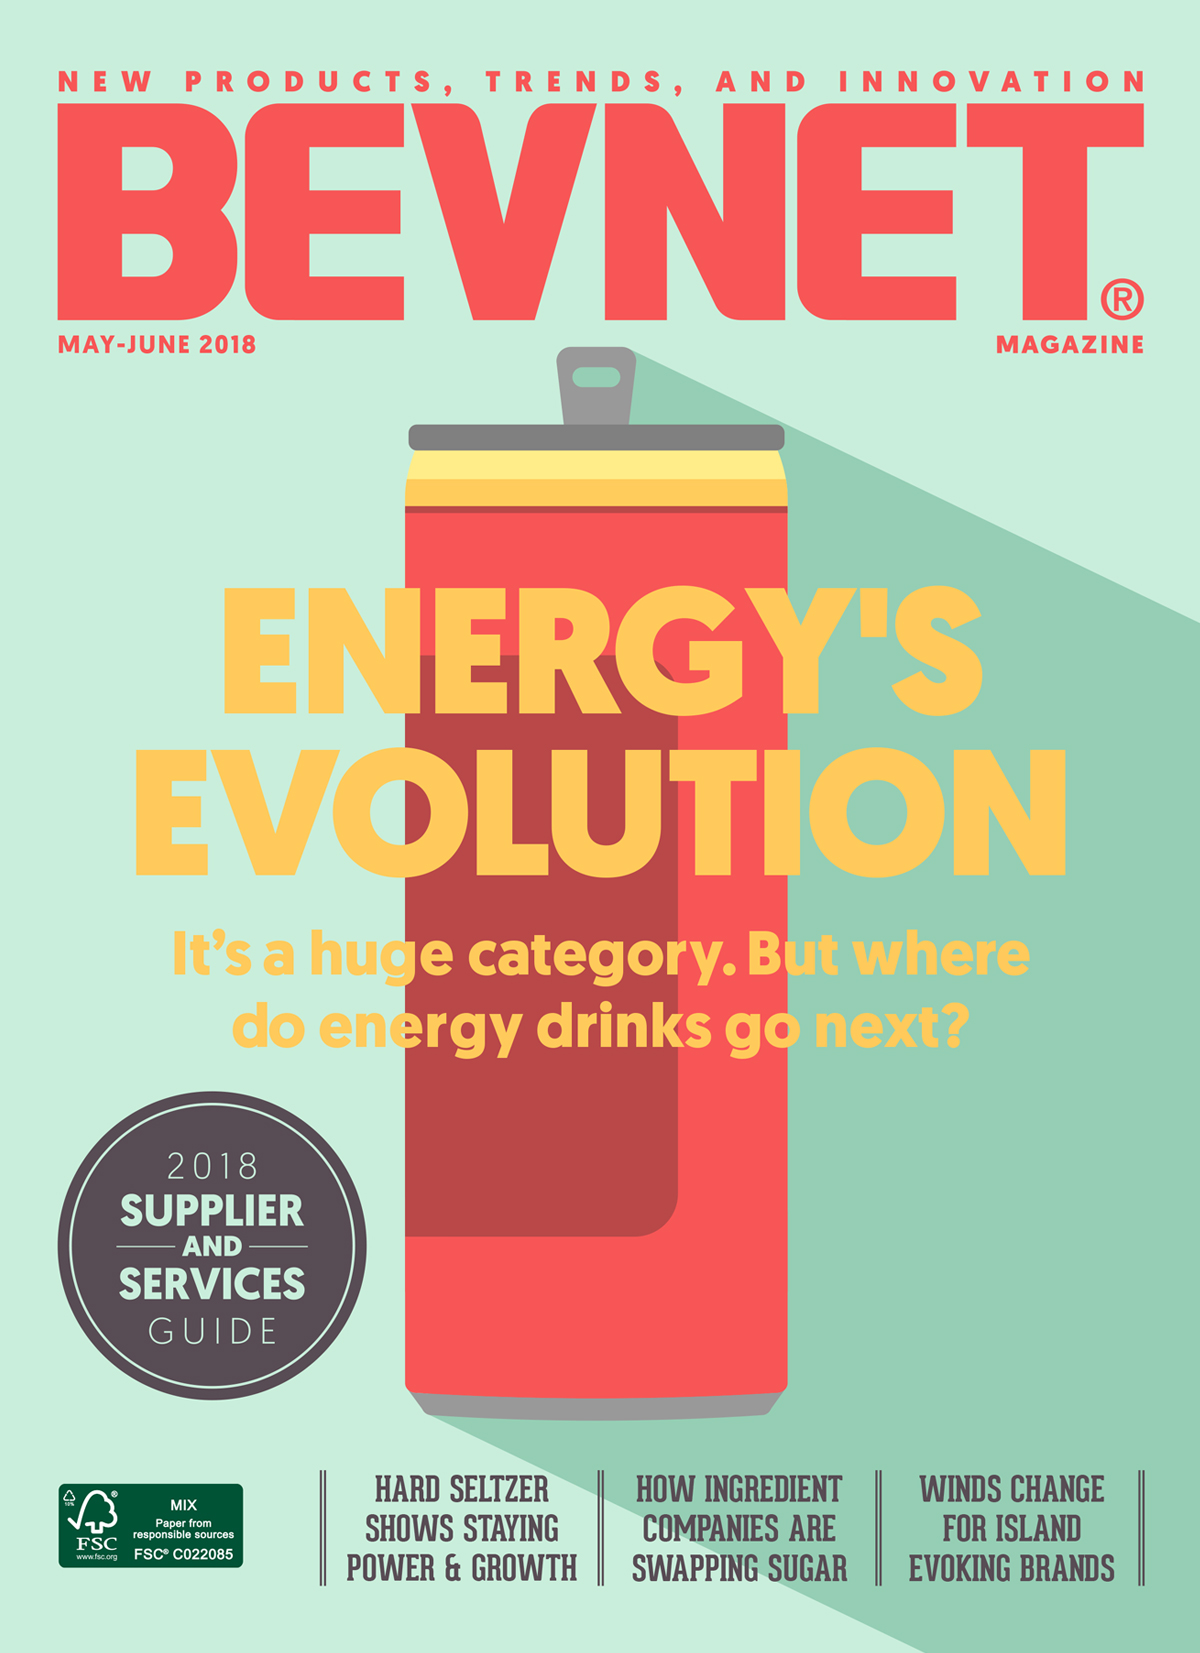 Energy's Evolution: It's a huge category. But where do energy drinks go next?